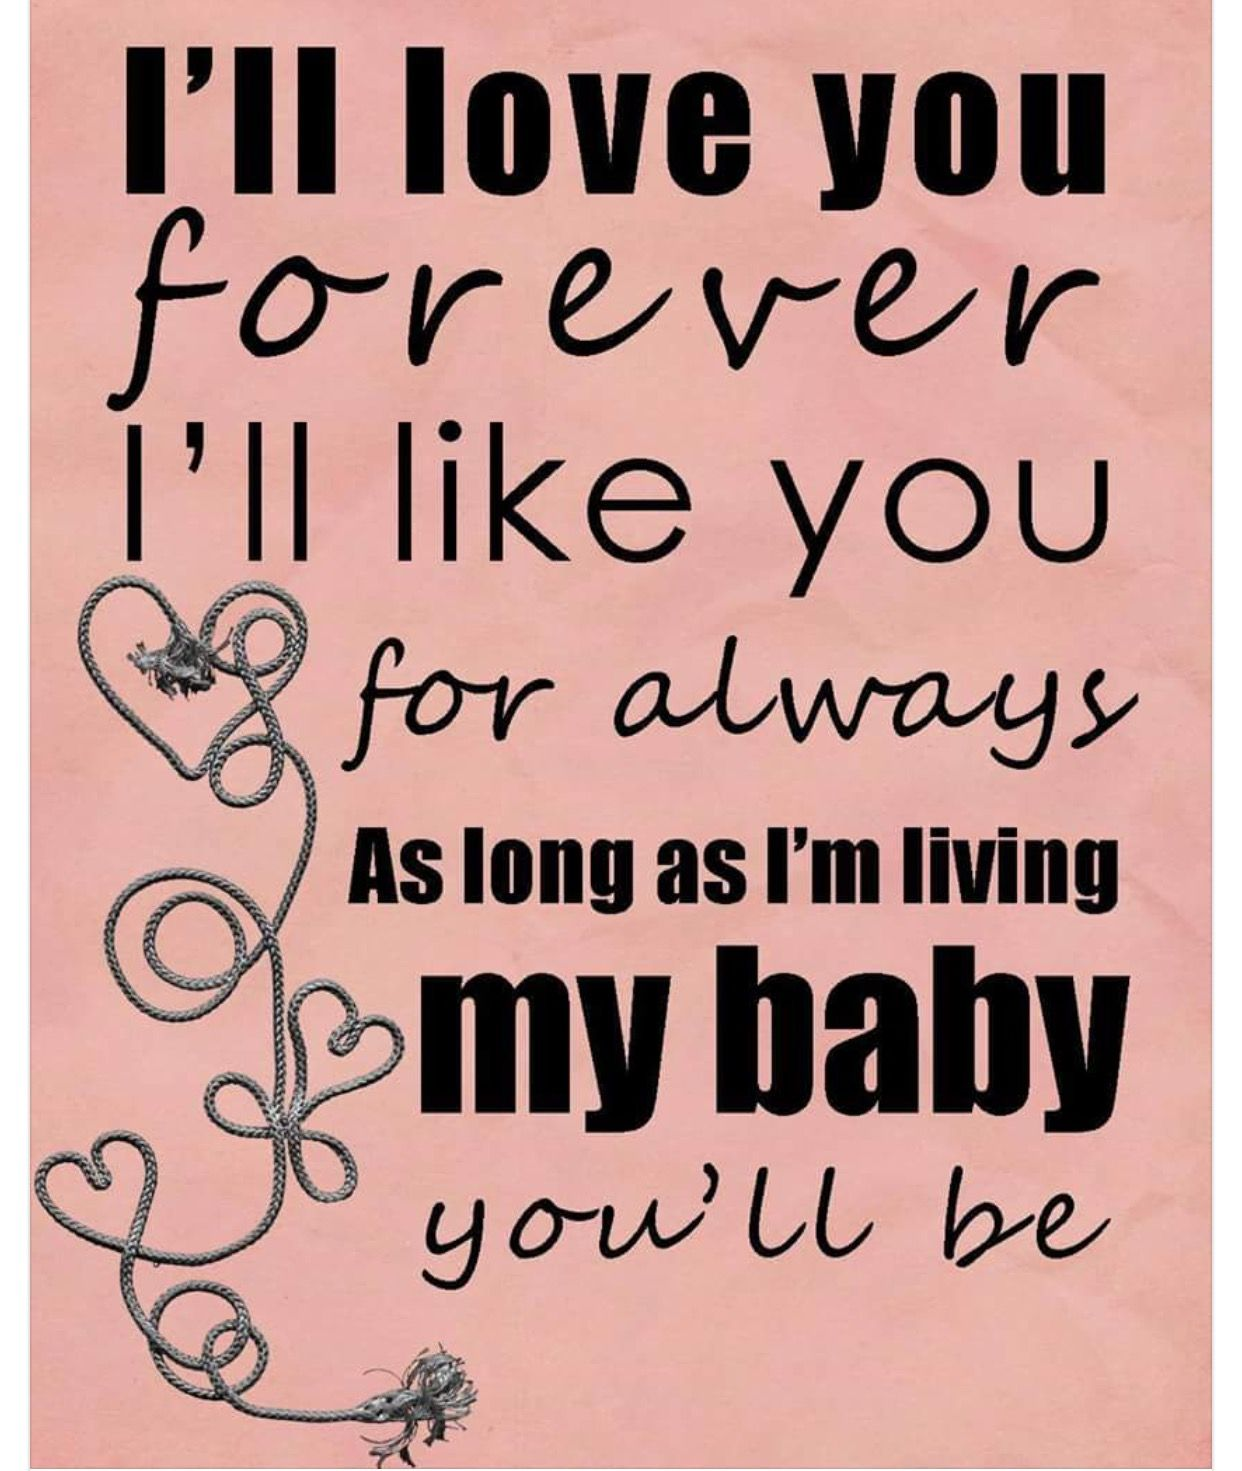 Quotes About A Mother's Love Pinnikole Anderson On Love This  Pinterest